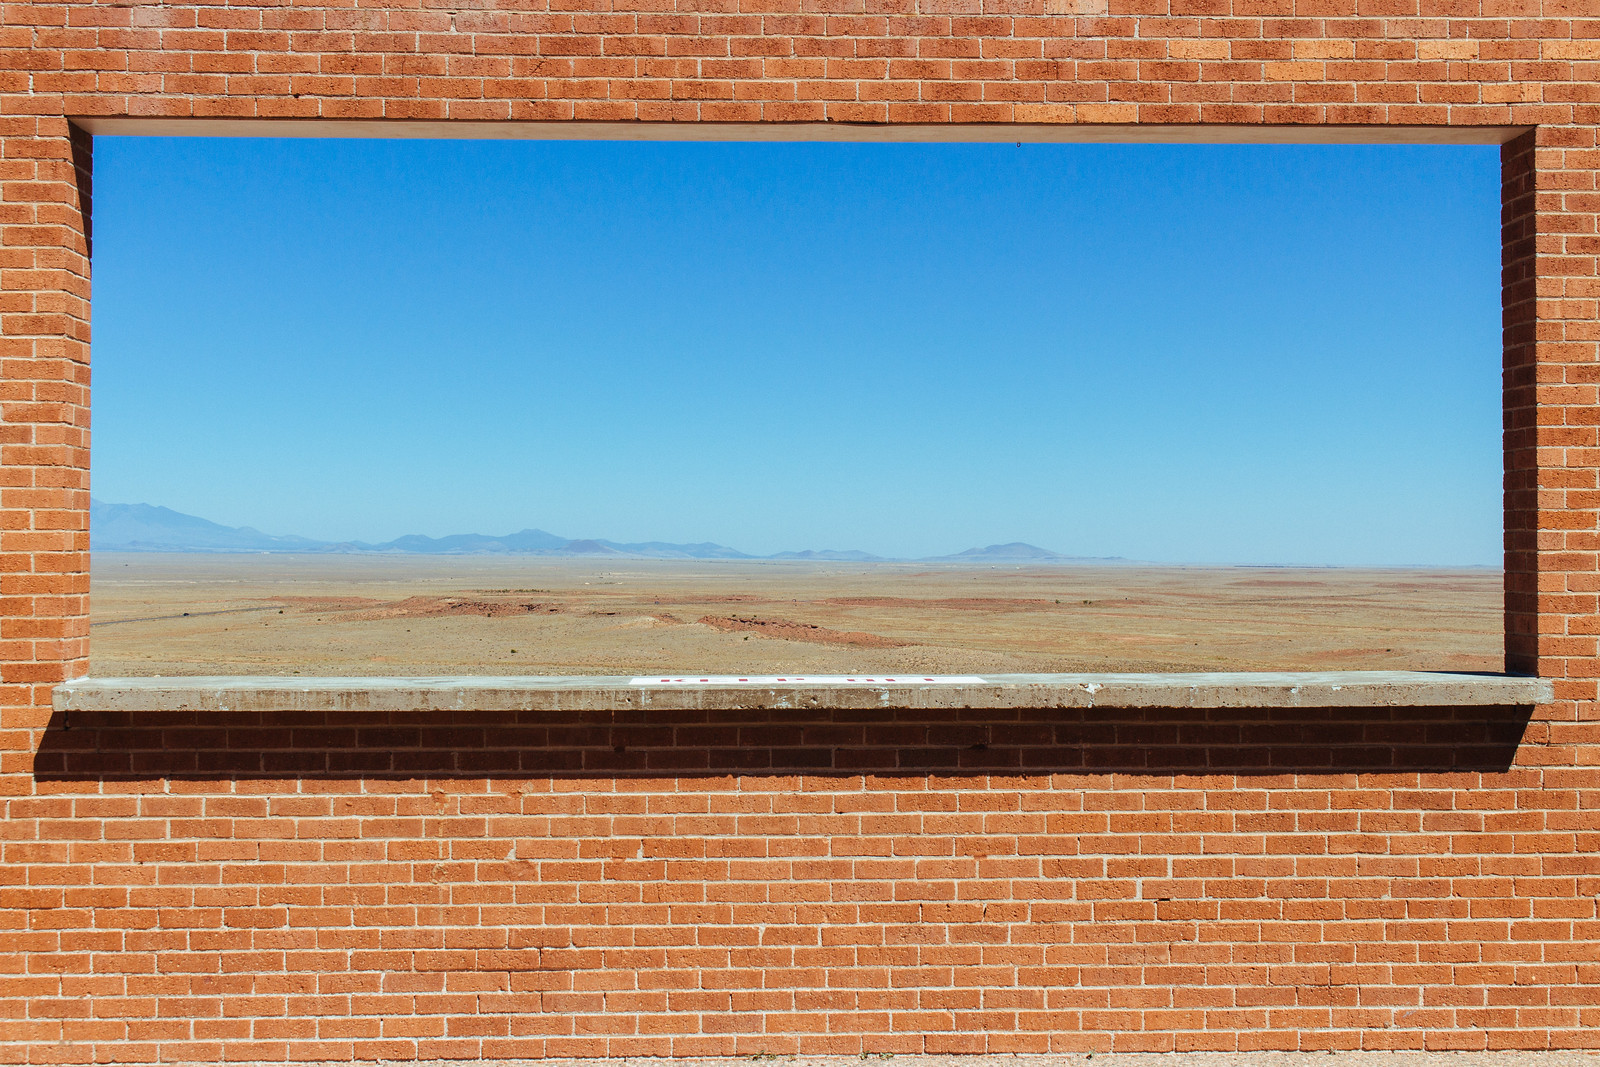 Desert, mountains, and blue sky seen through a brick window in Arizona